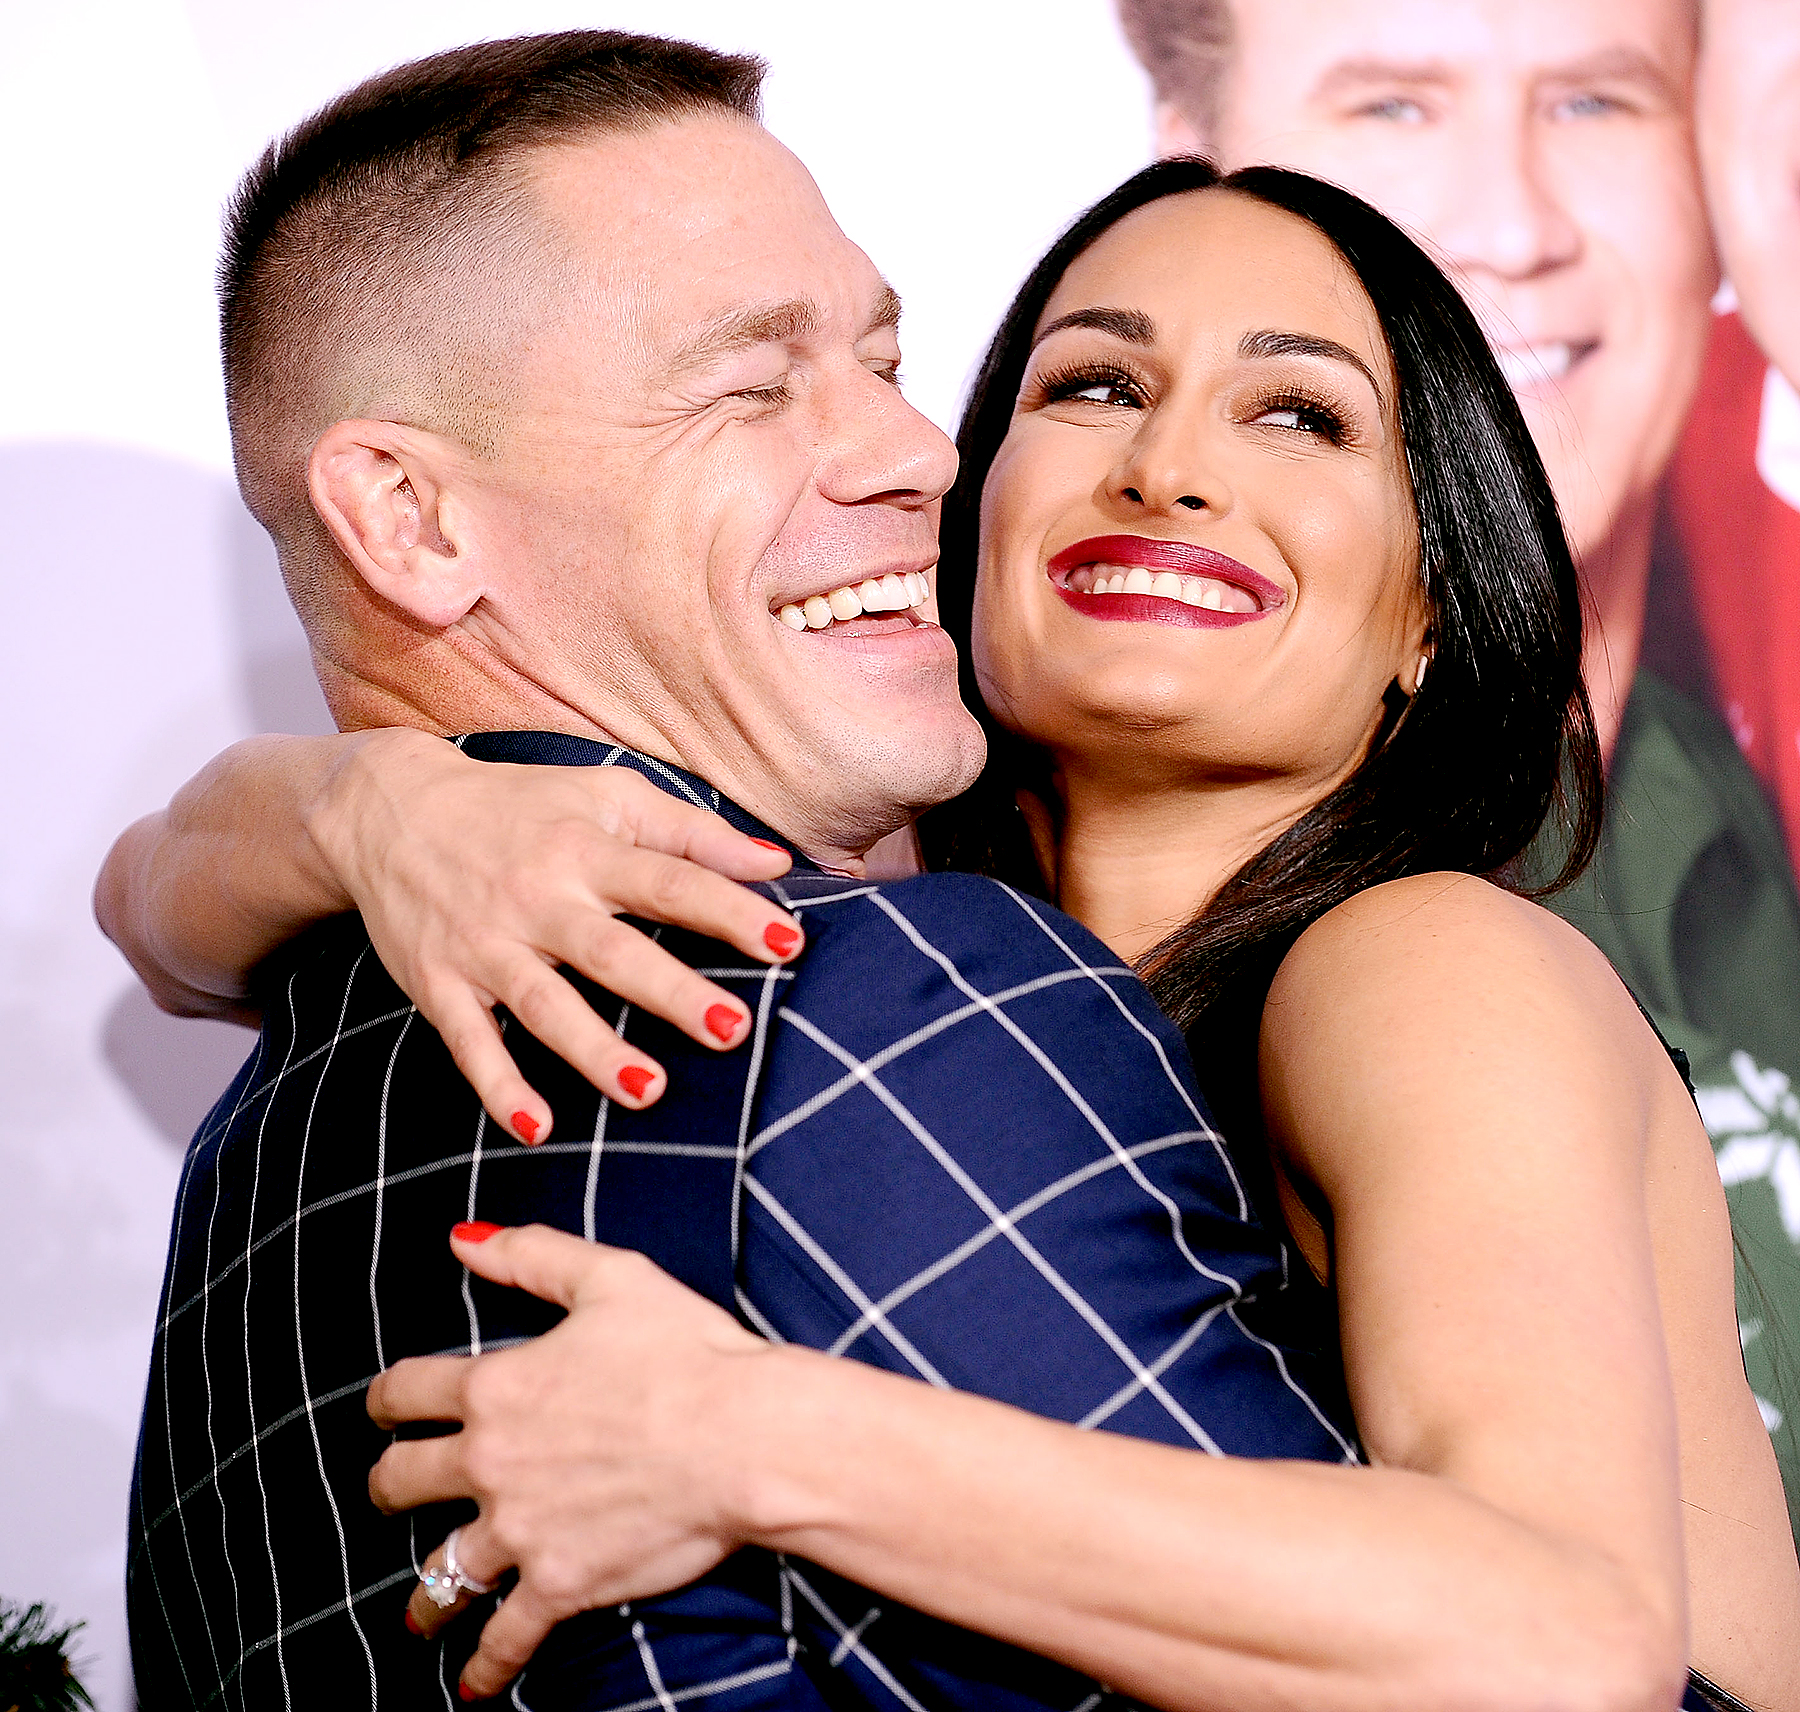 Nikki Bella Reportedly Broke Off The Engagement With Cena